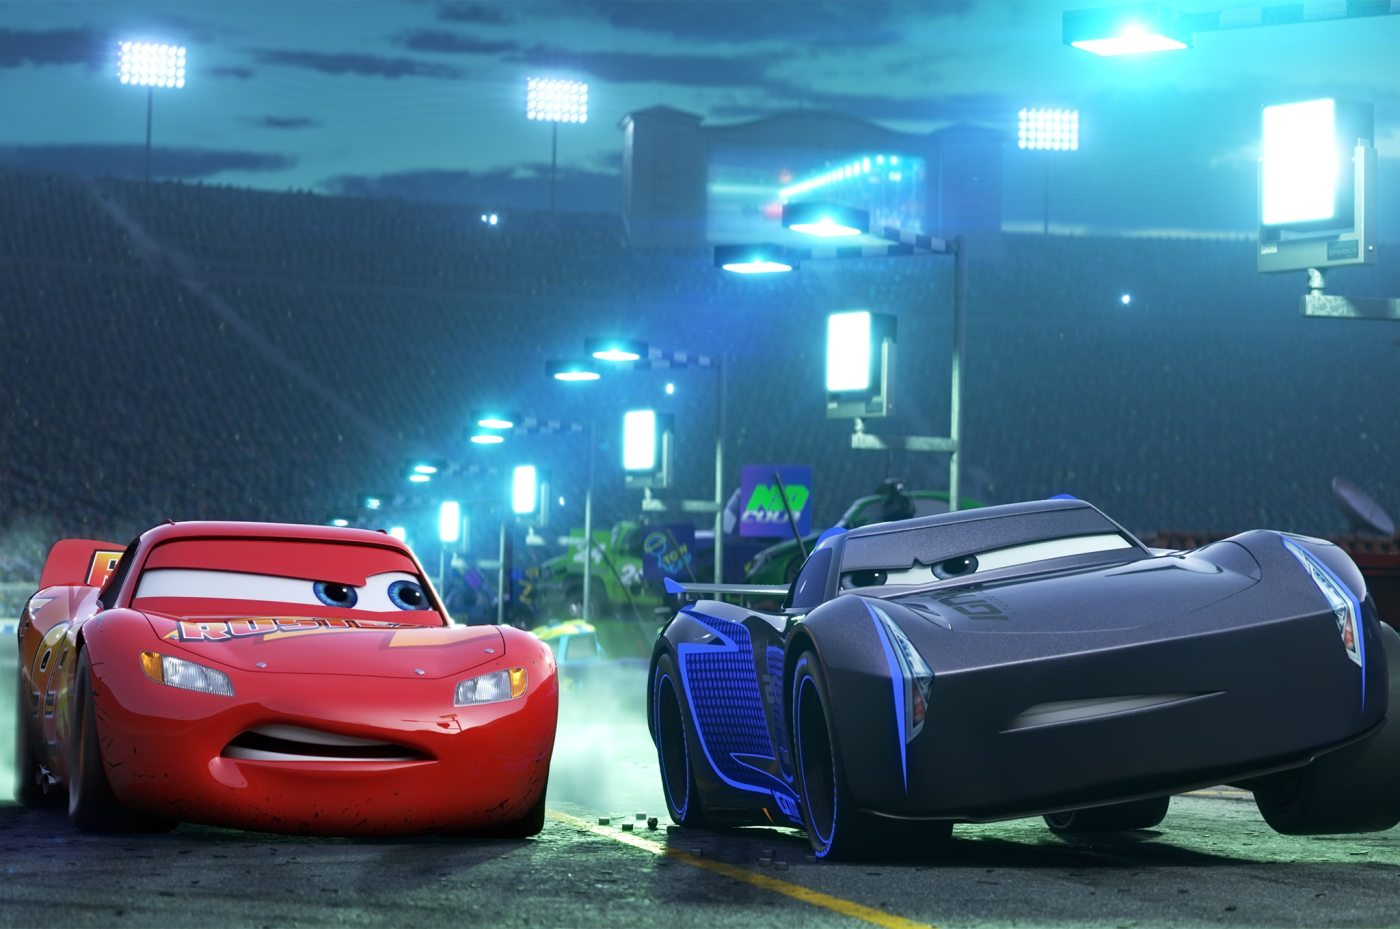 Cars 3 image showing Jackson Storm and Lightning McQueen